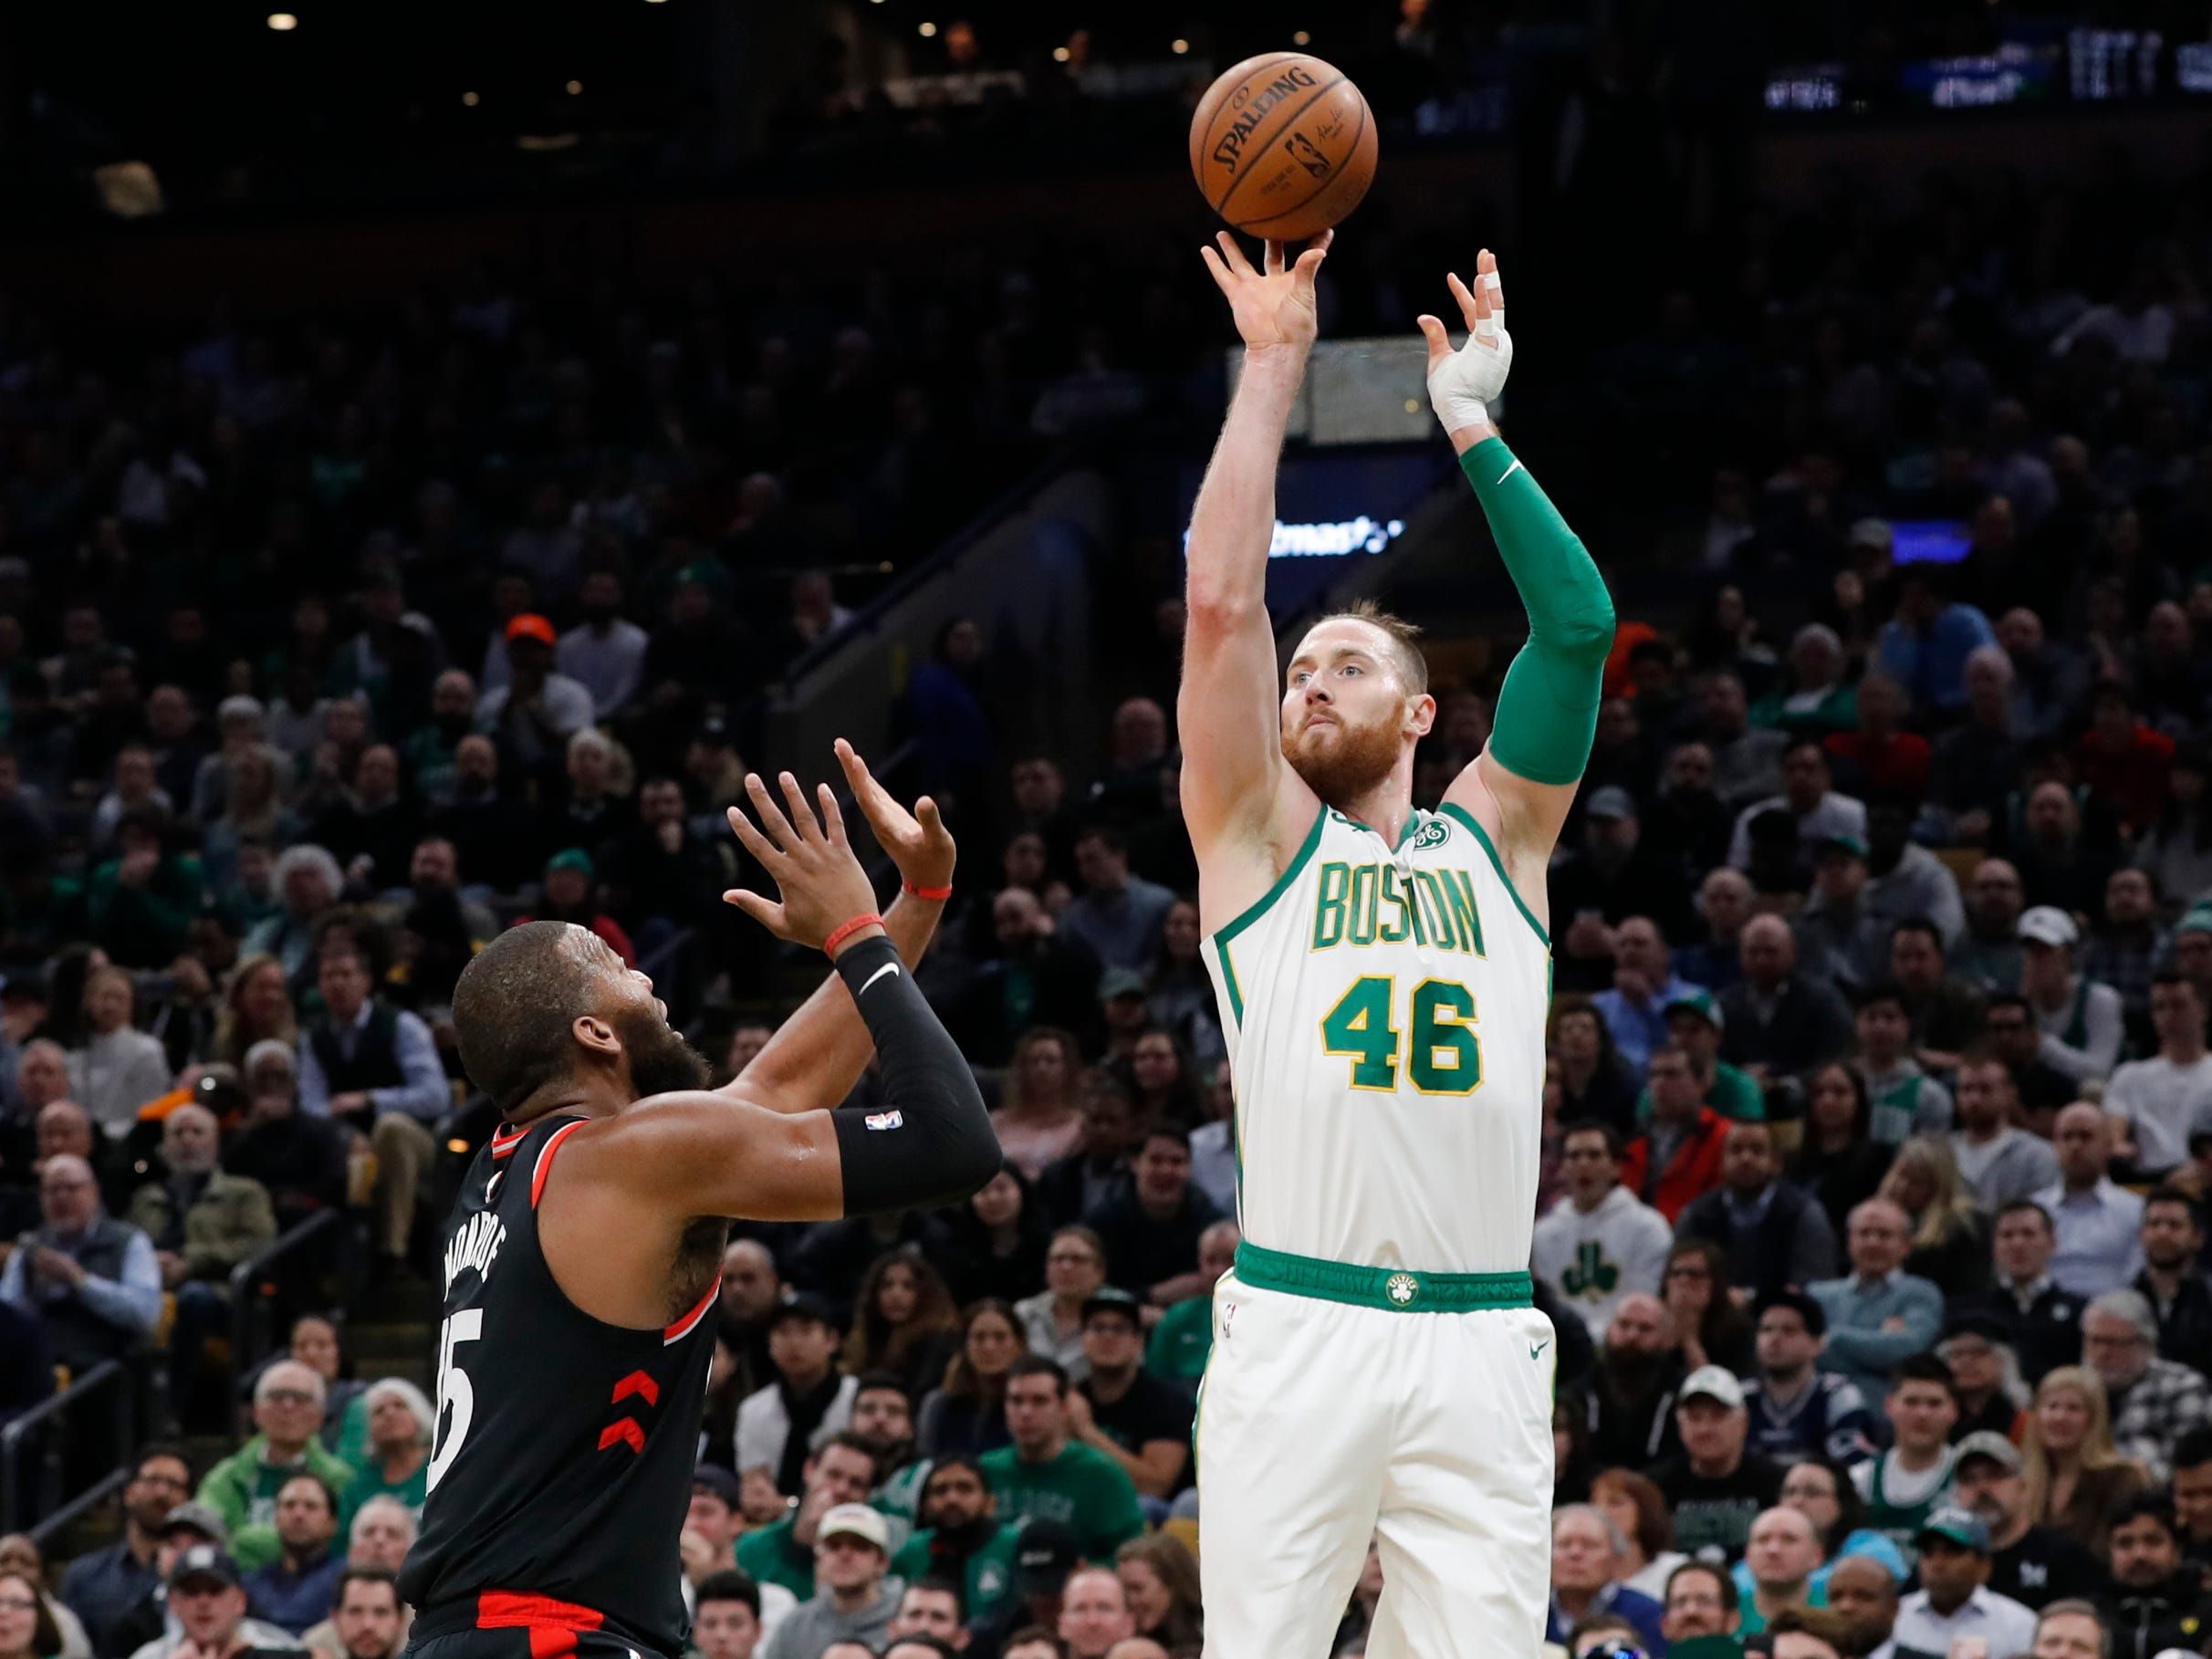 Boston Celtics center Aron Baynes shoots against the Toronto Raptors at TD Garden in Boston, Jan. 16, 2019.